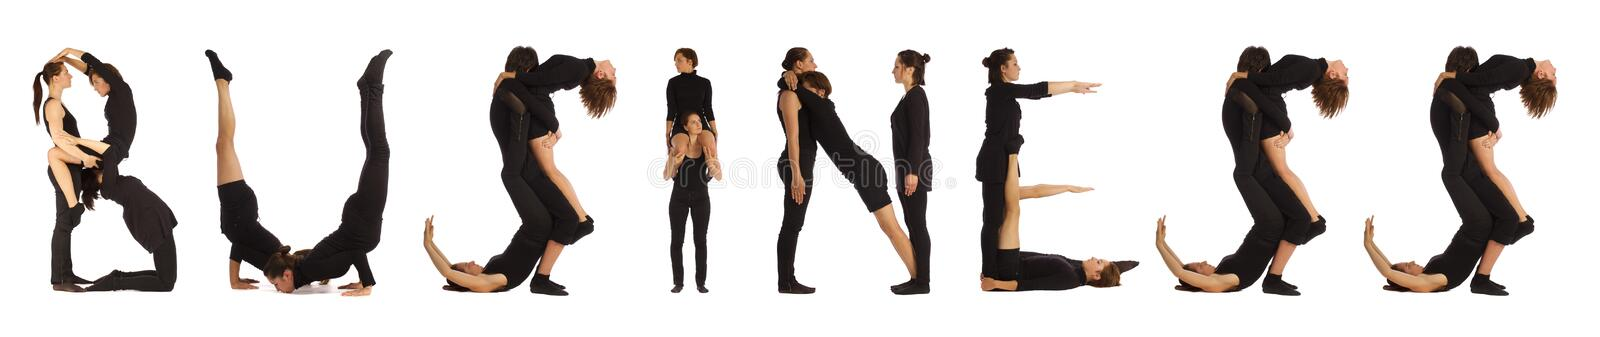 Black dressed people forming BUSINESS word stock photos